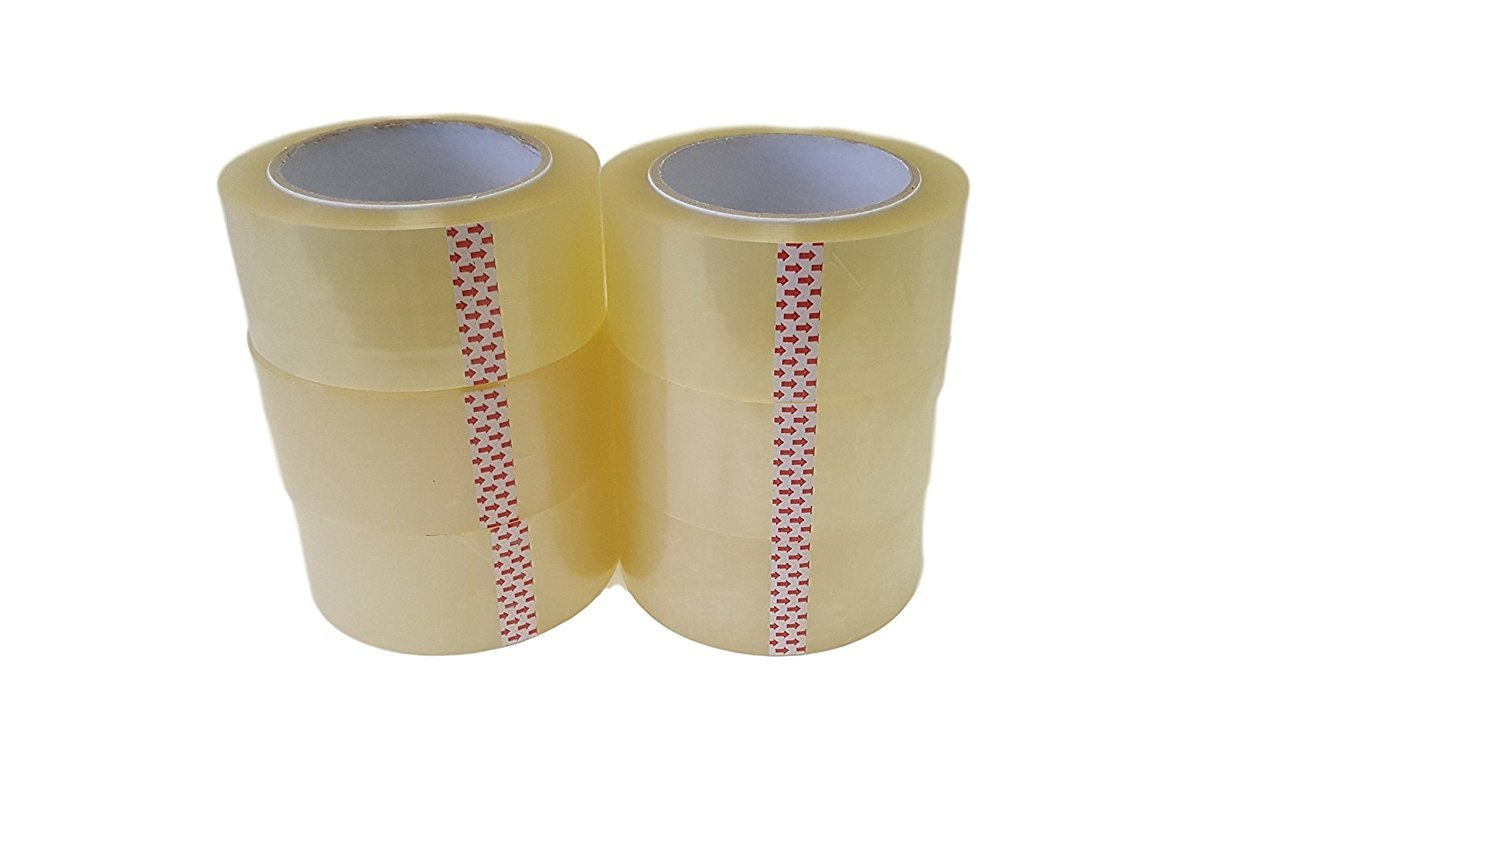 Empire Mailers - 36 Rolls - 55 Yards Per Roll (165 feet) 2 Inch Wide 1.8 MIL Heavy Duty Shipping & Packing Tape Moving & Adhesive Carton Sealing - Strong Clear Industrial Grade